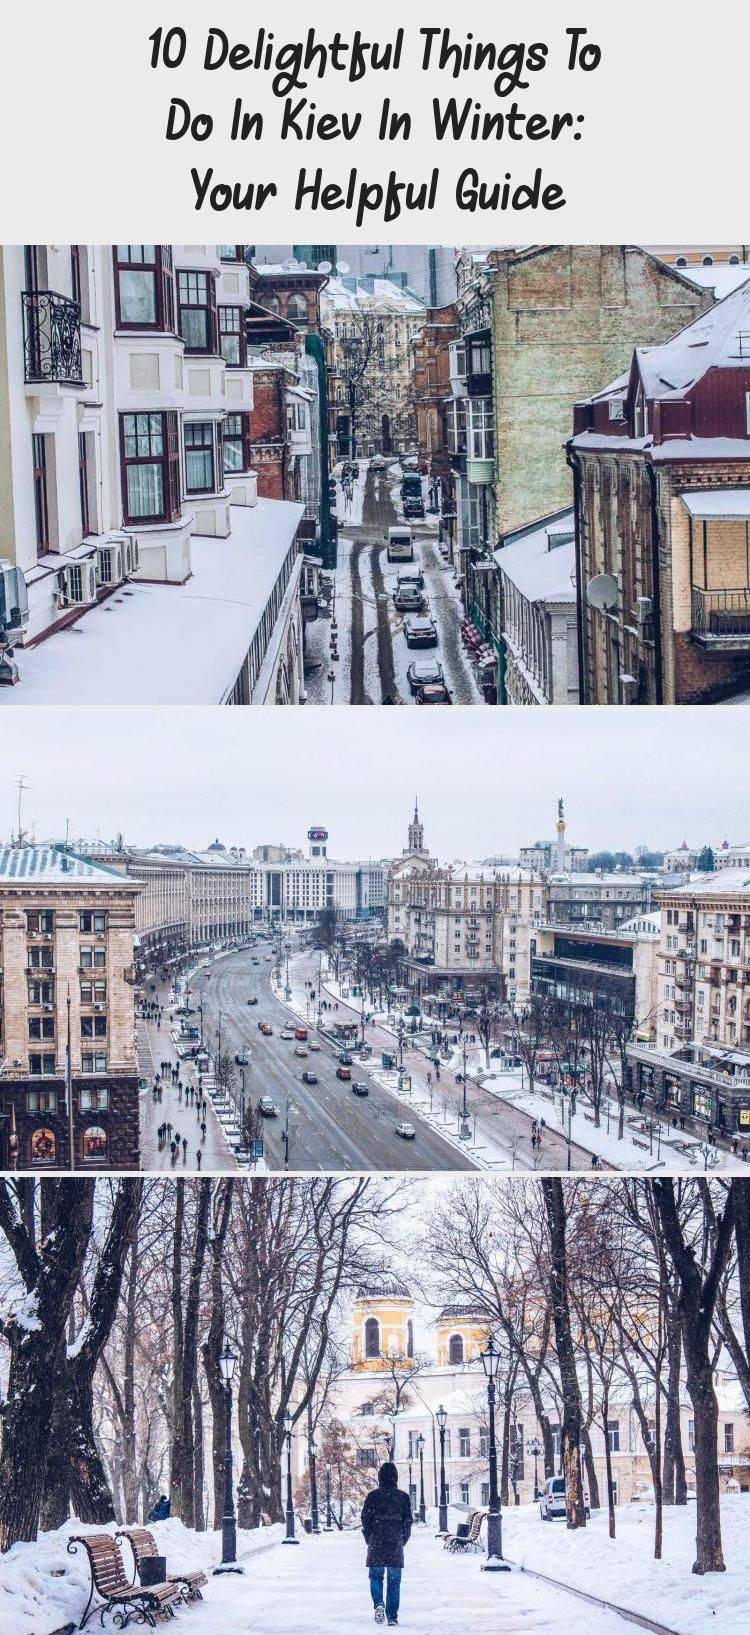 The list of delightful things to do in Kiev in winter. They are all interesting and unique. Check these super cool winter Kiev tips for your trip to Ukraine. #EuropeTravel #Kiev #Ukraine #WinterTravel #EasternEurope #travelingwinterRoadTrips #travelingwinterCouple #travelingwinterAesthetic #travelingwinterUSA #Swedentravelingwinter